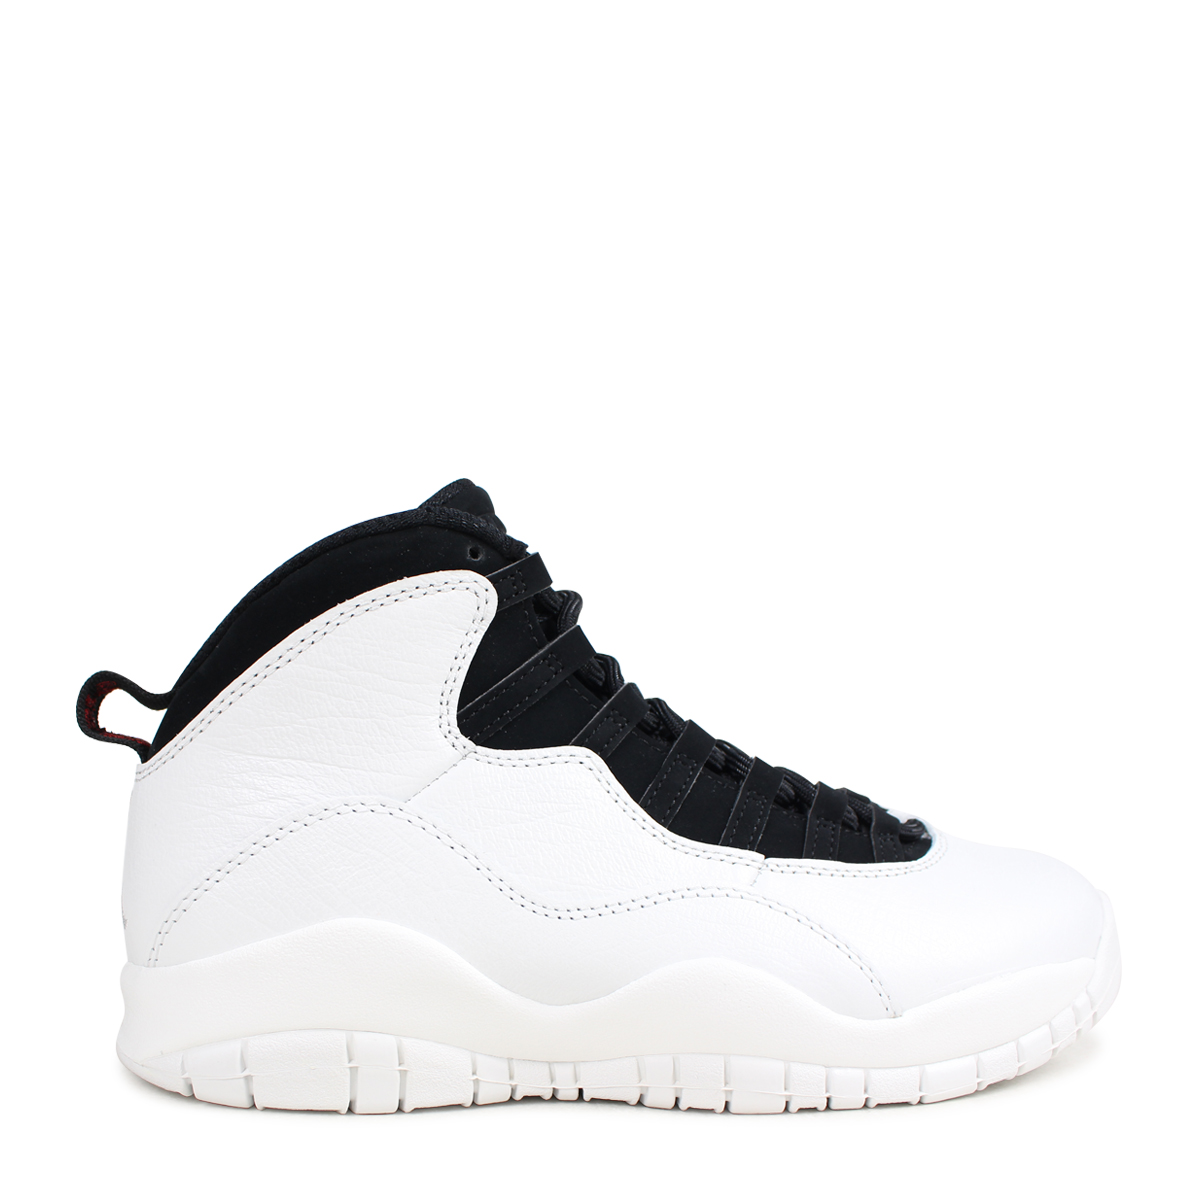 buy online 88d5d 7e62d NIKE AIR JORDAN 10 RETRO I'M BACK Nike Air Jordan 10 nostalgic sneakers men  310,805-104 white [3/30 Shinnyu load] [183]